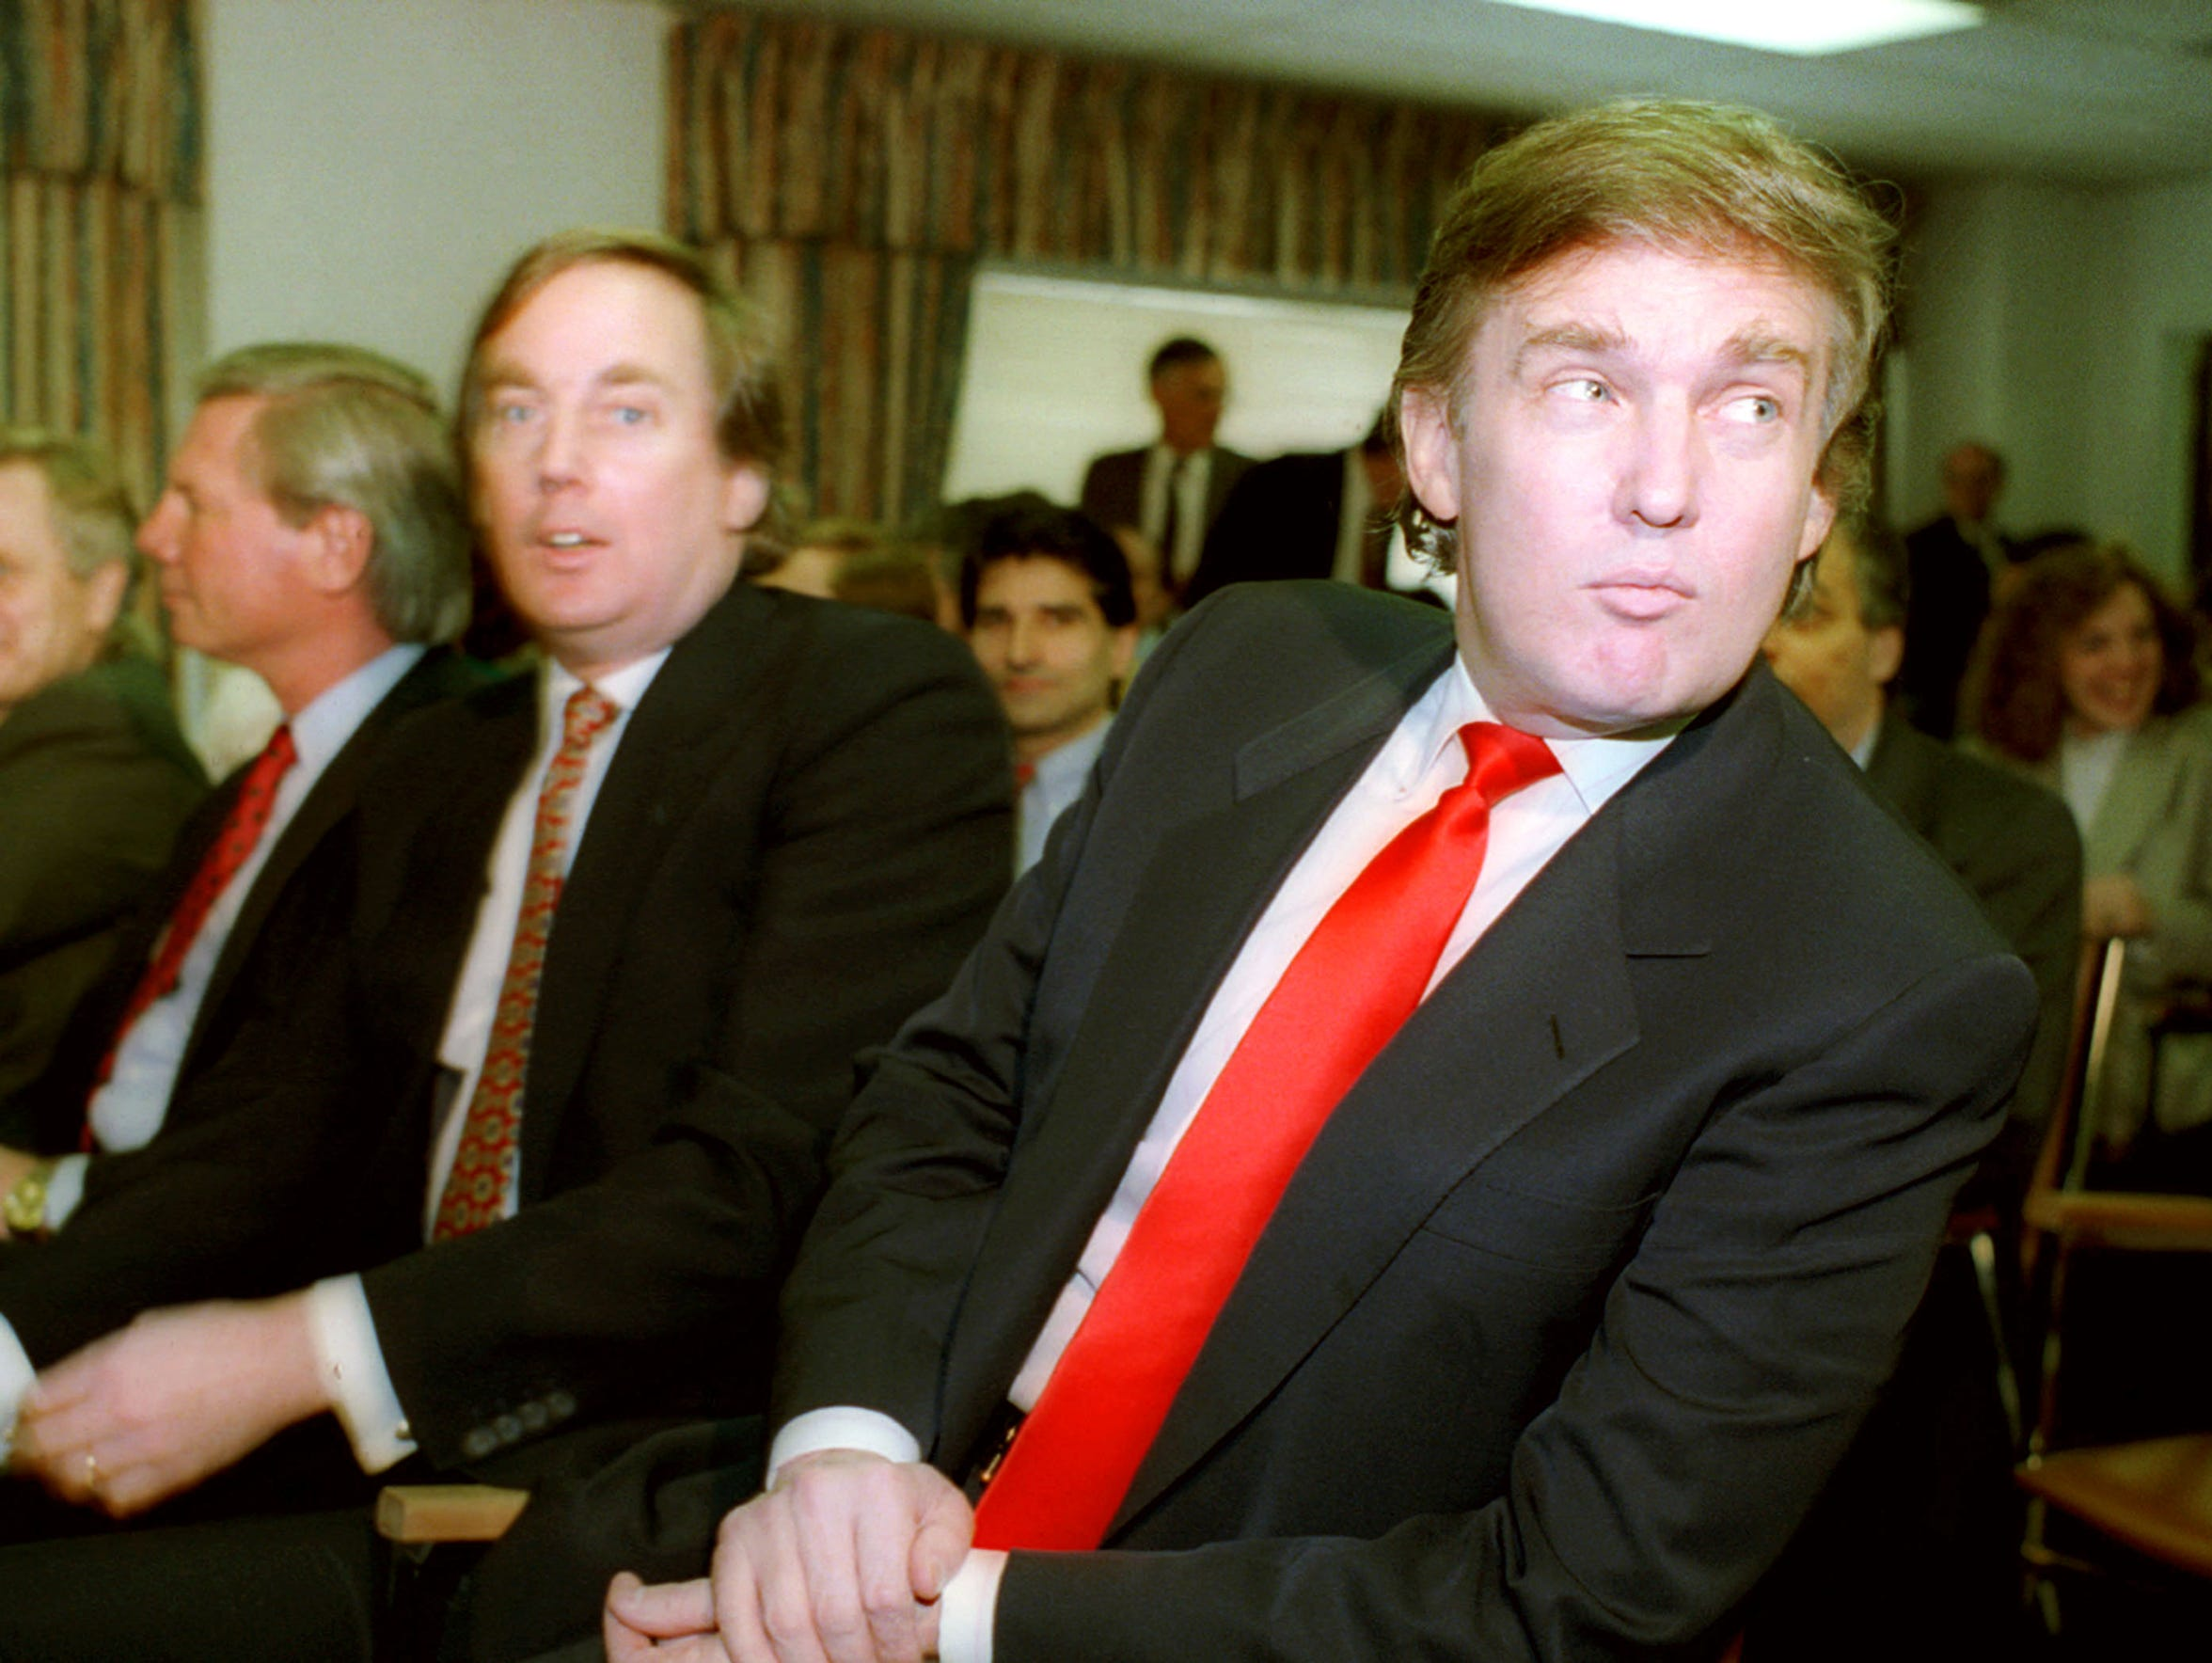 Donald Trump, right, waits with his brother Robert